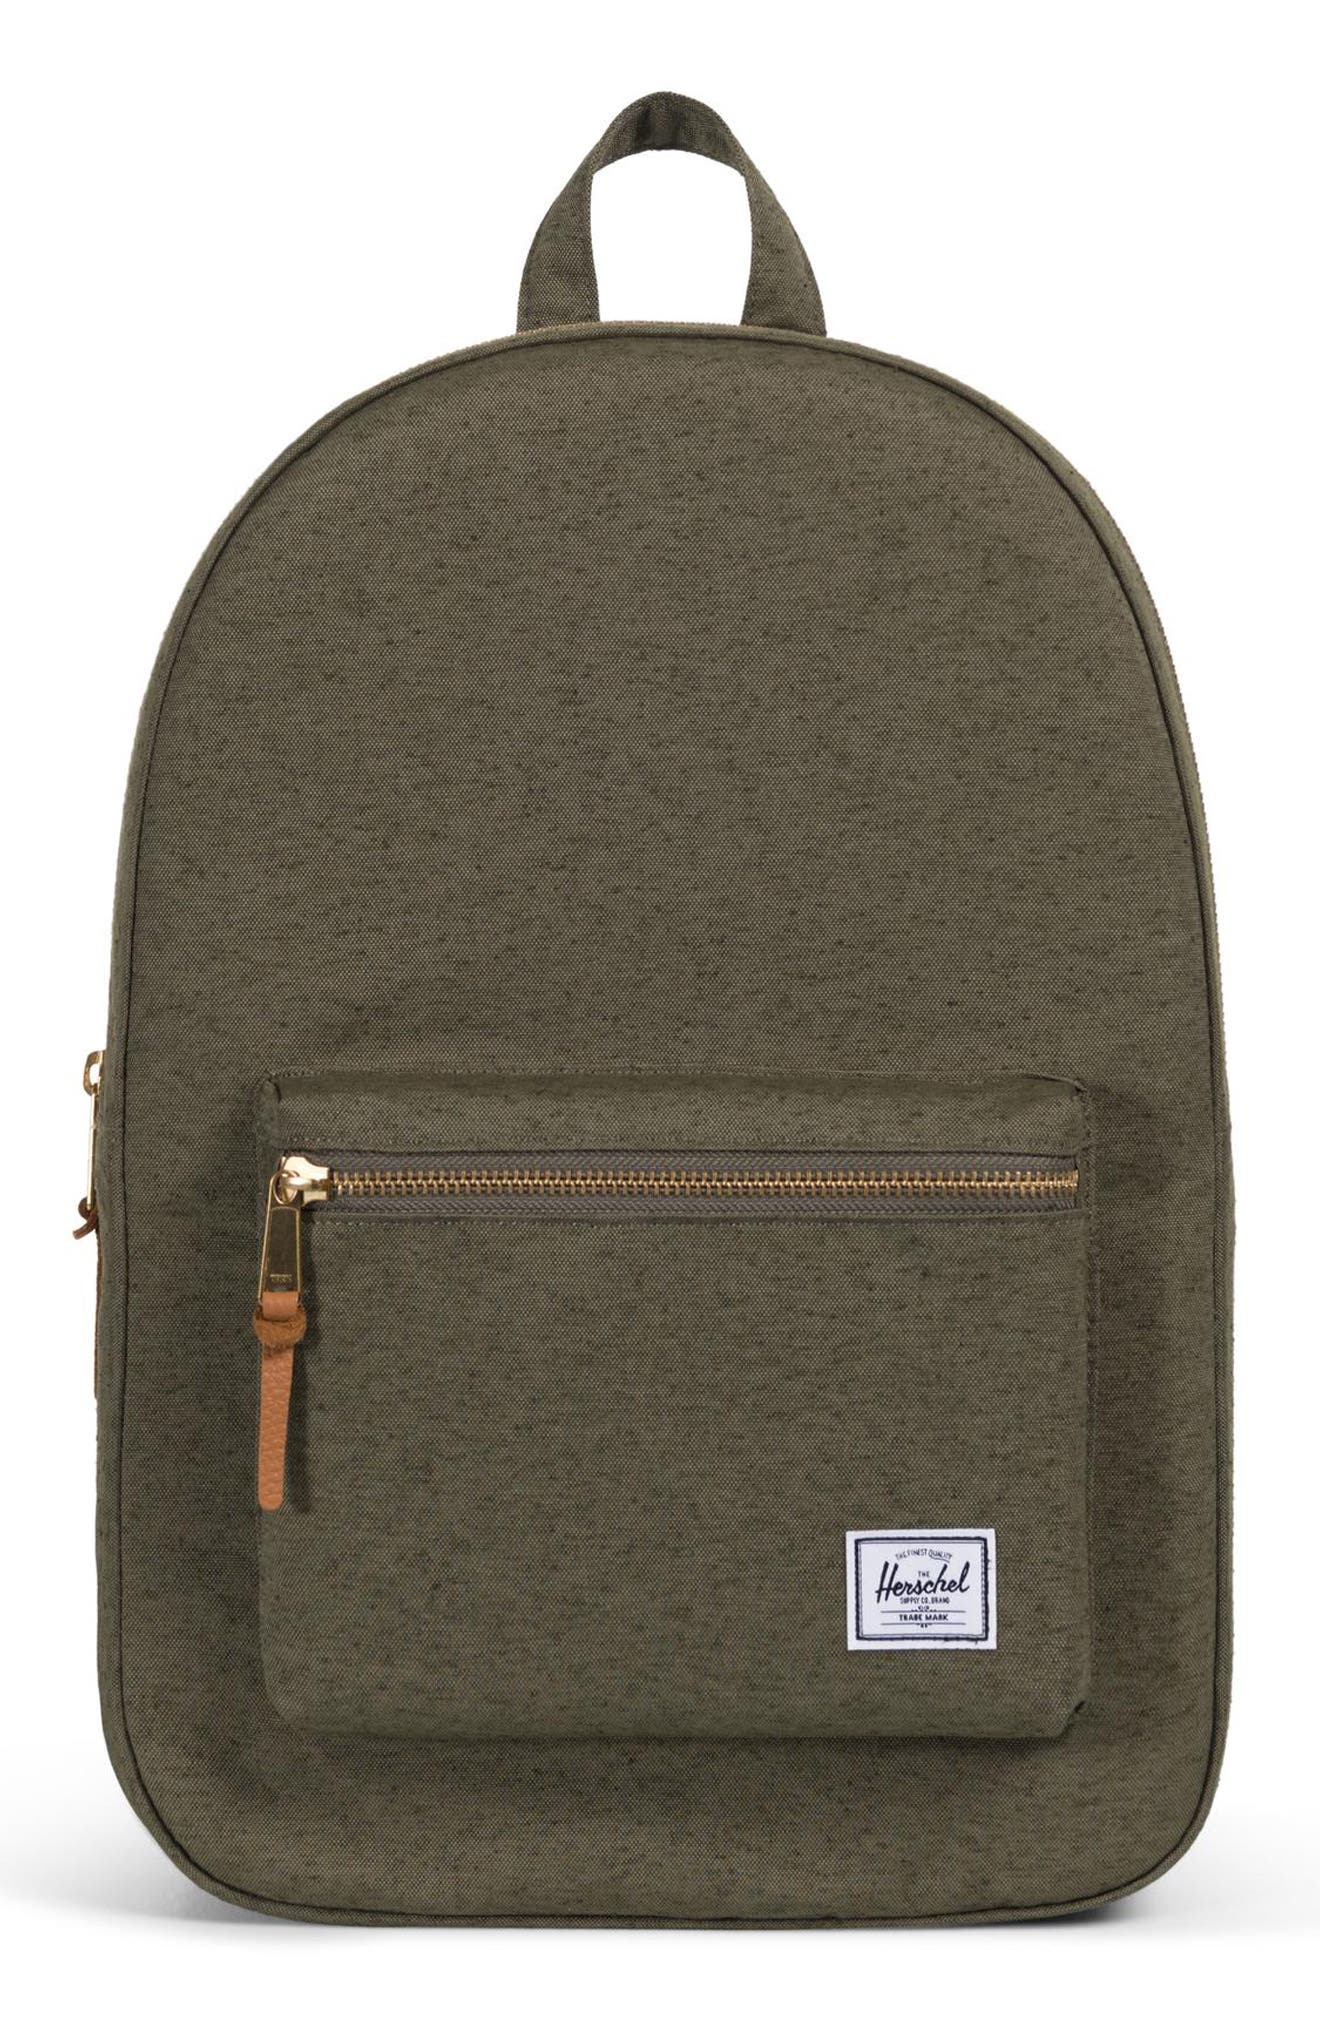 Settlement Backpack,                             Alternate thumbnail 2, color,                             IVY GREEN SLUB